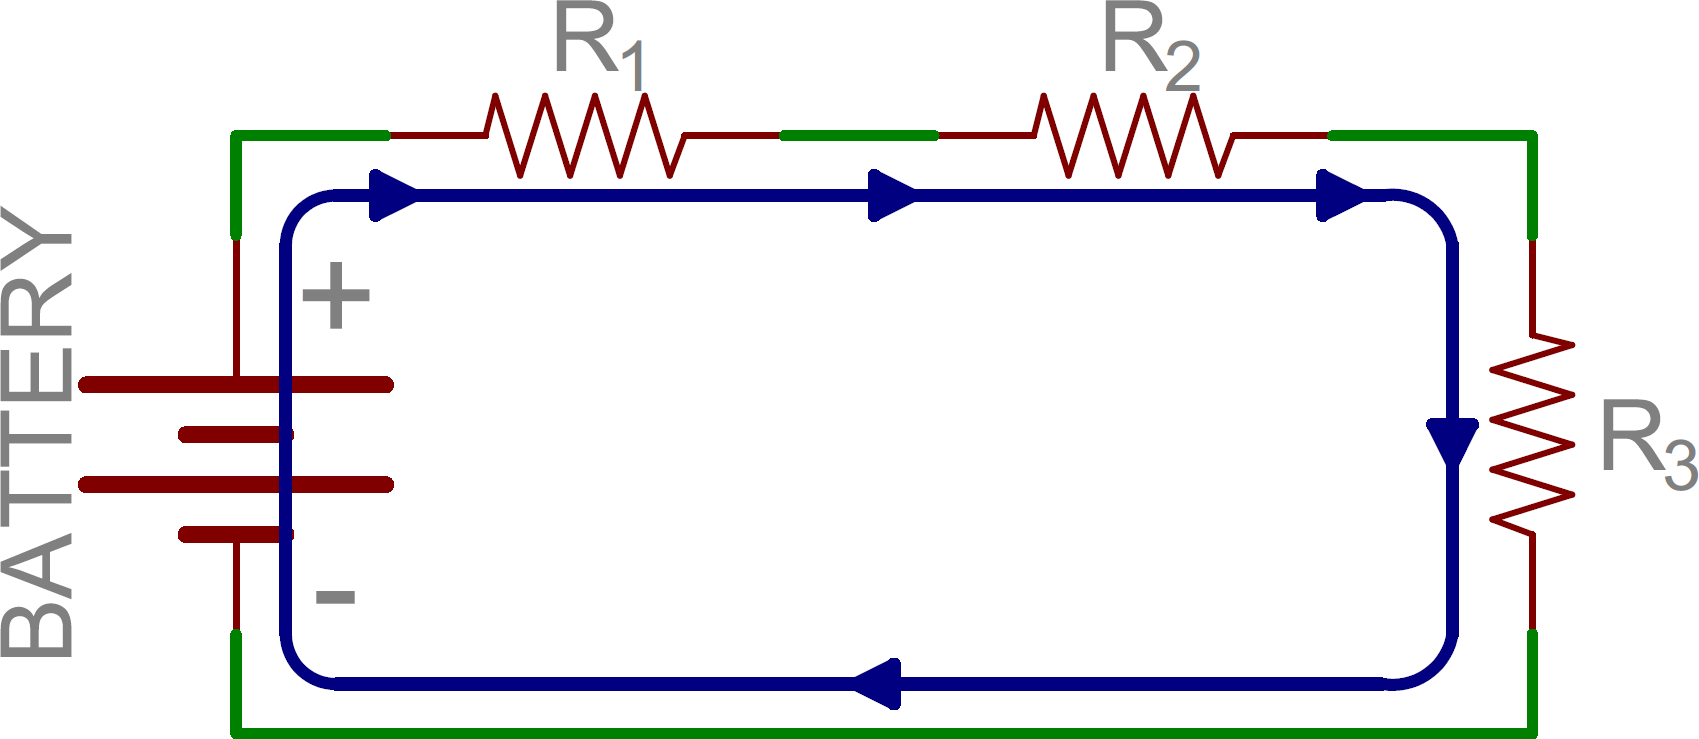 Series And Parallel Circuits Basic Dc Theory Circuit Analysis All Of The Heres An Example With Three Resistors Schematic In